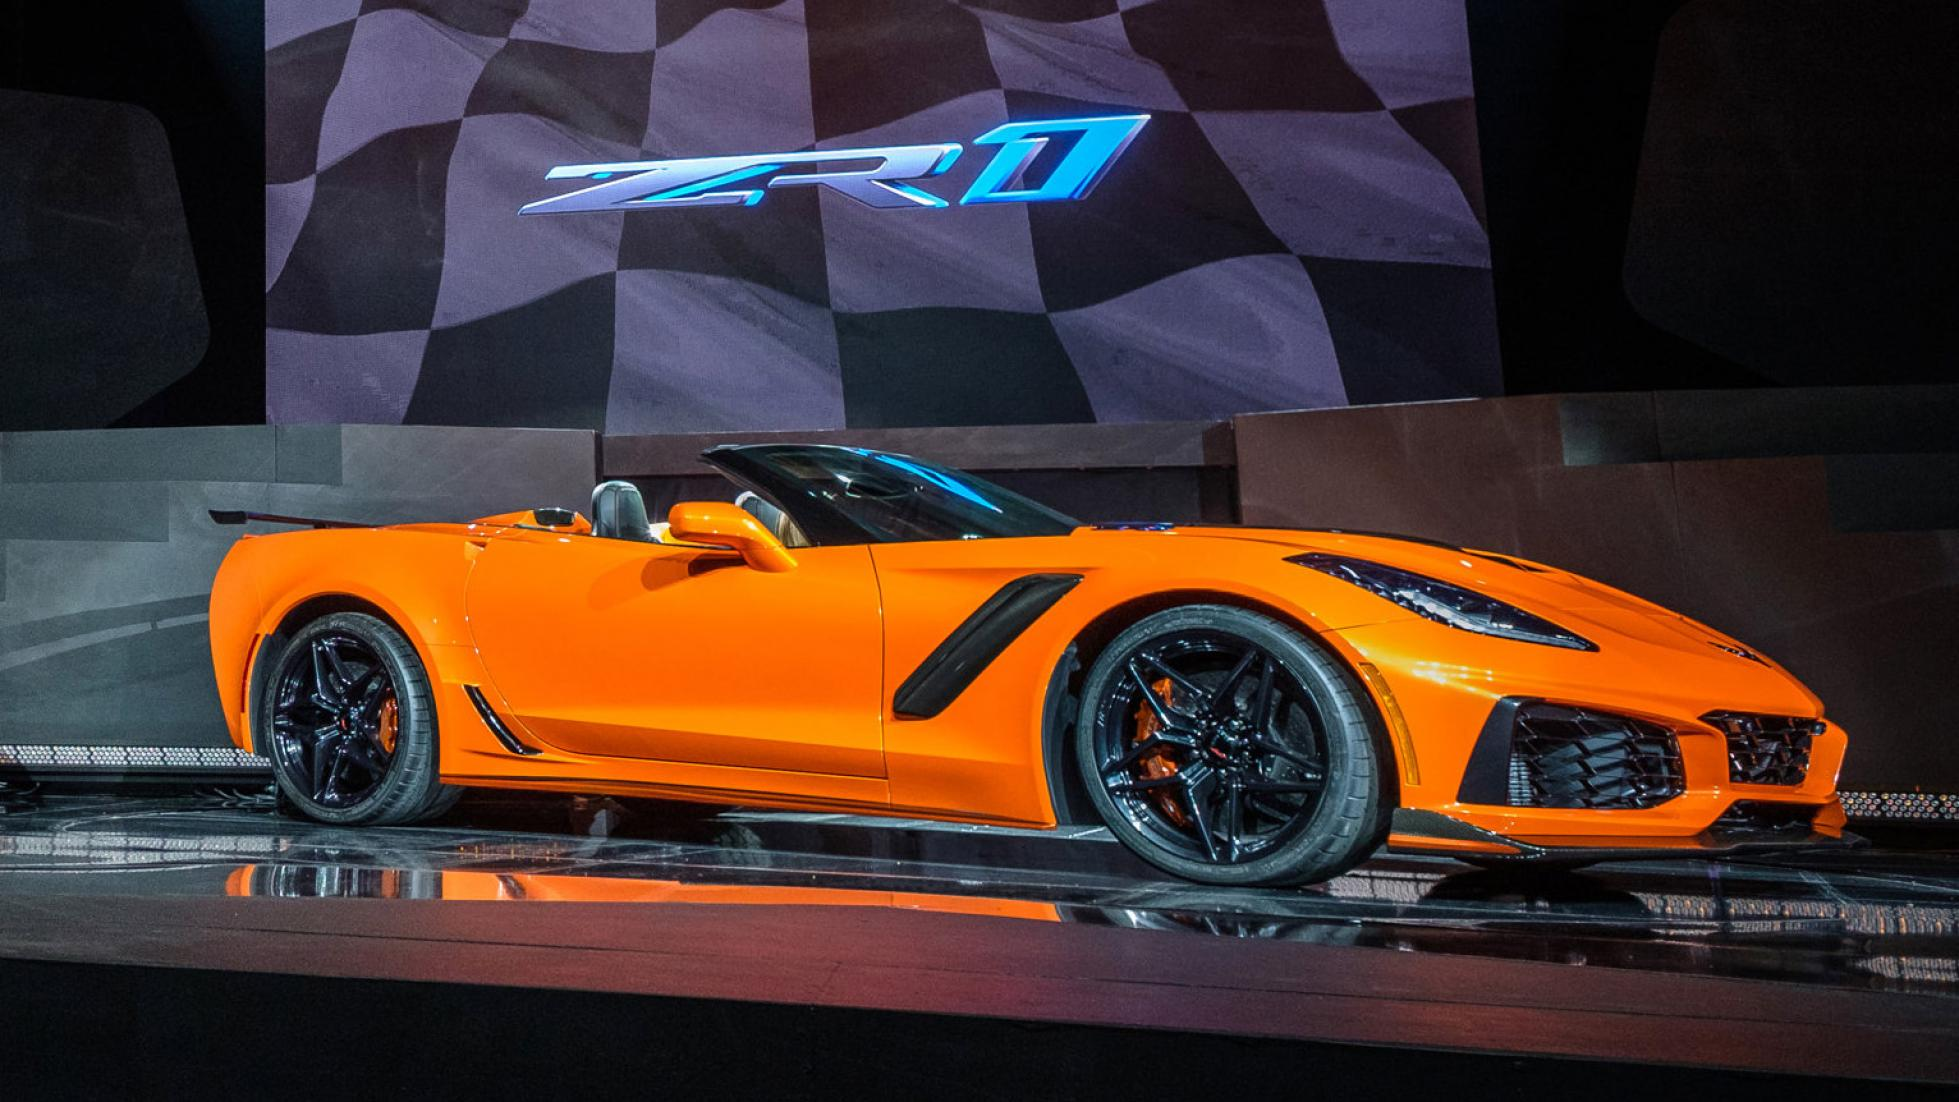 2019 corvette zr1 coupe and convertible officially unveiled at la auto show at 119 995. Black Bedroom Furniture Sets. Home Design Ideas